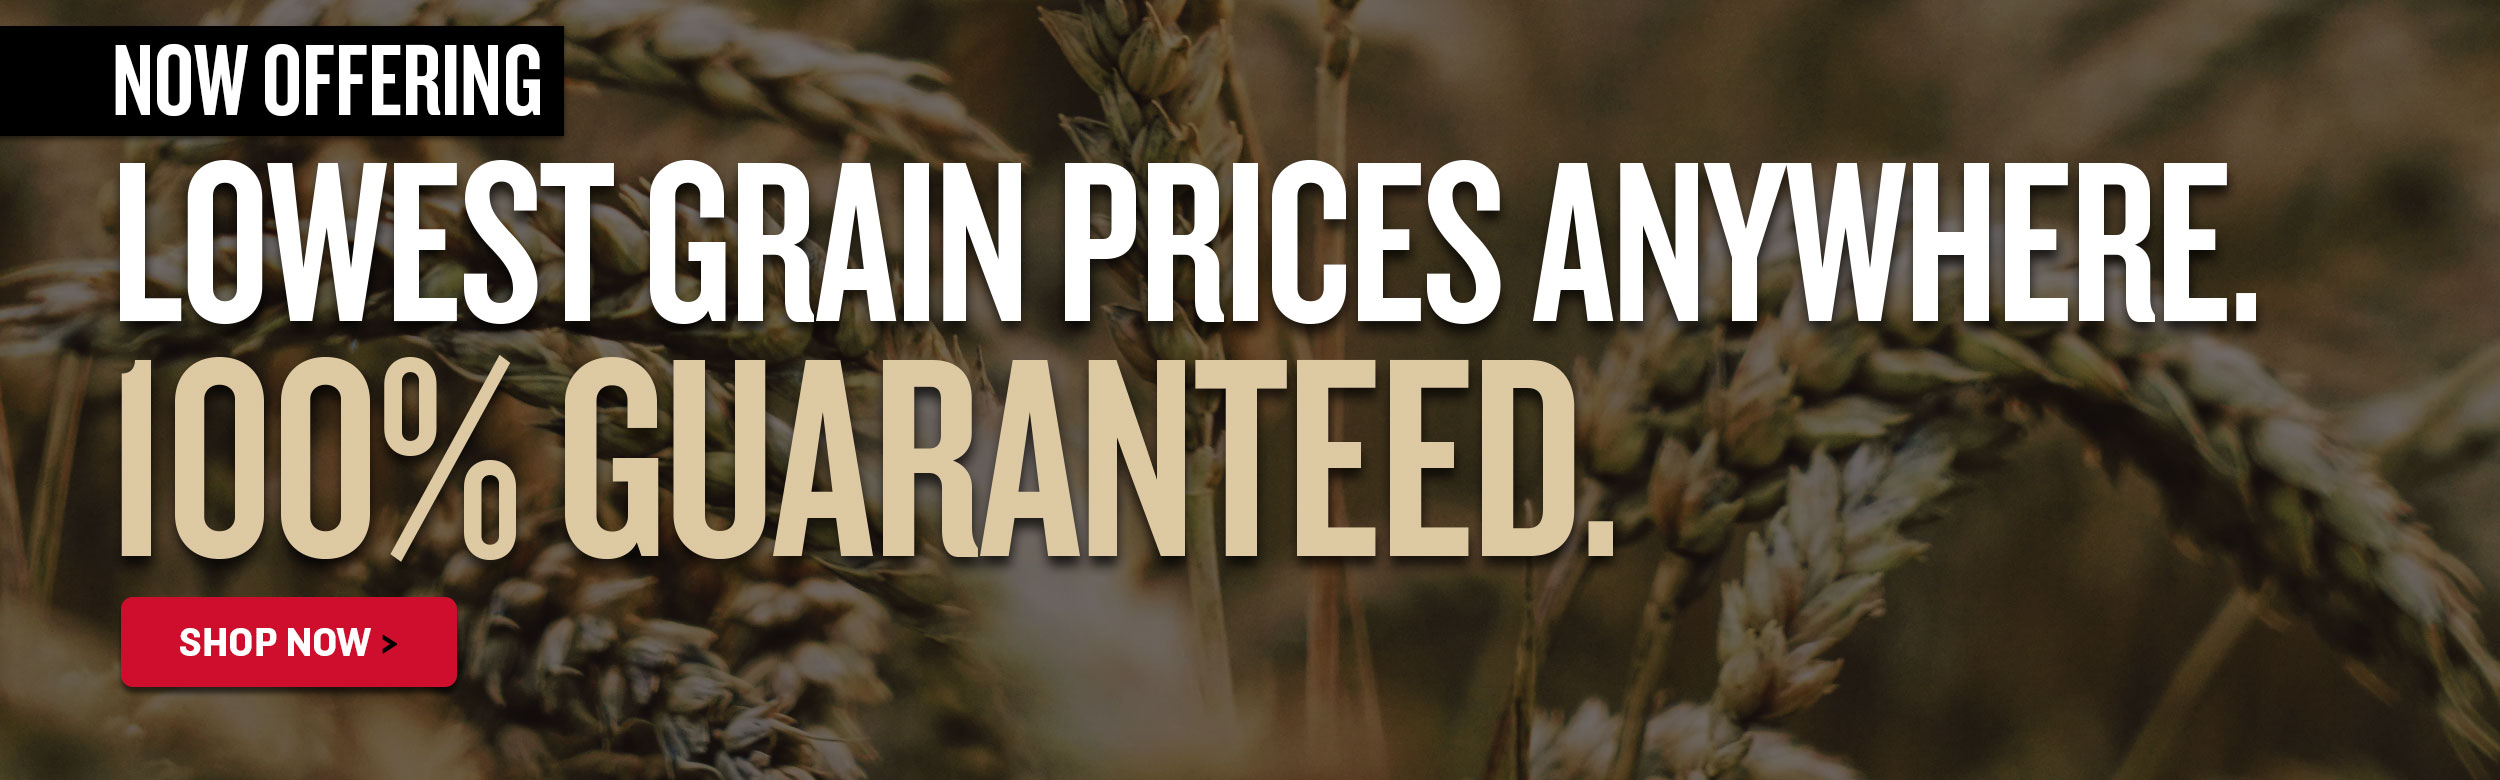 NEW Best-Price Promise on Grains!